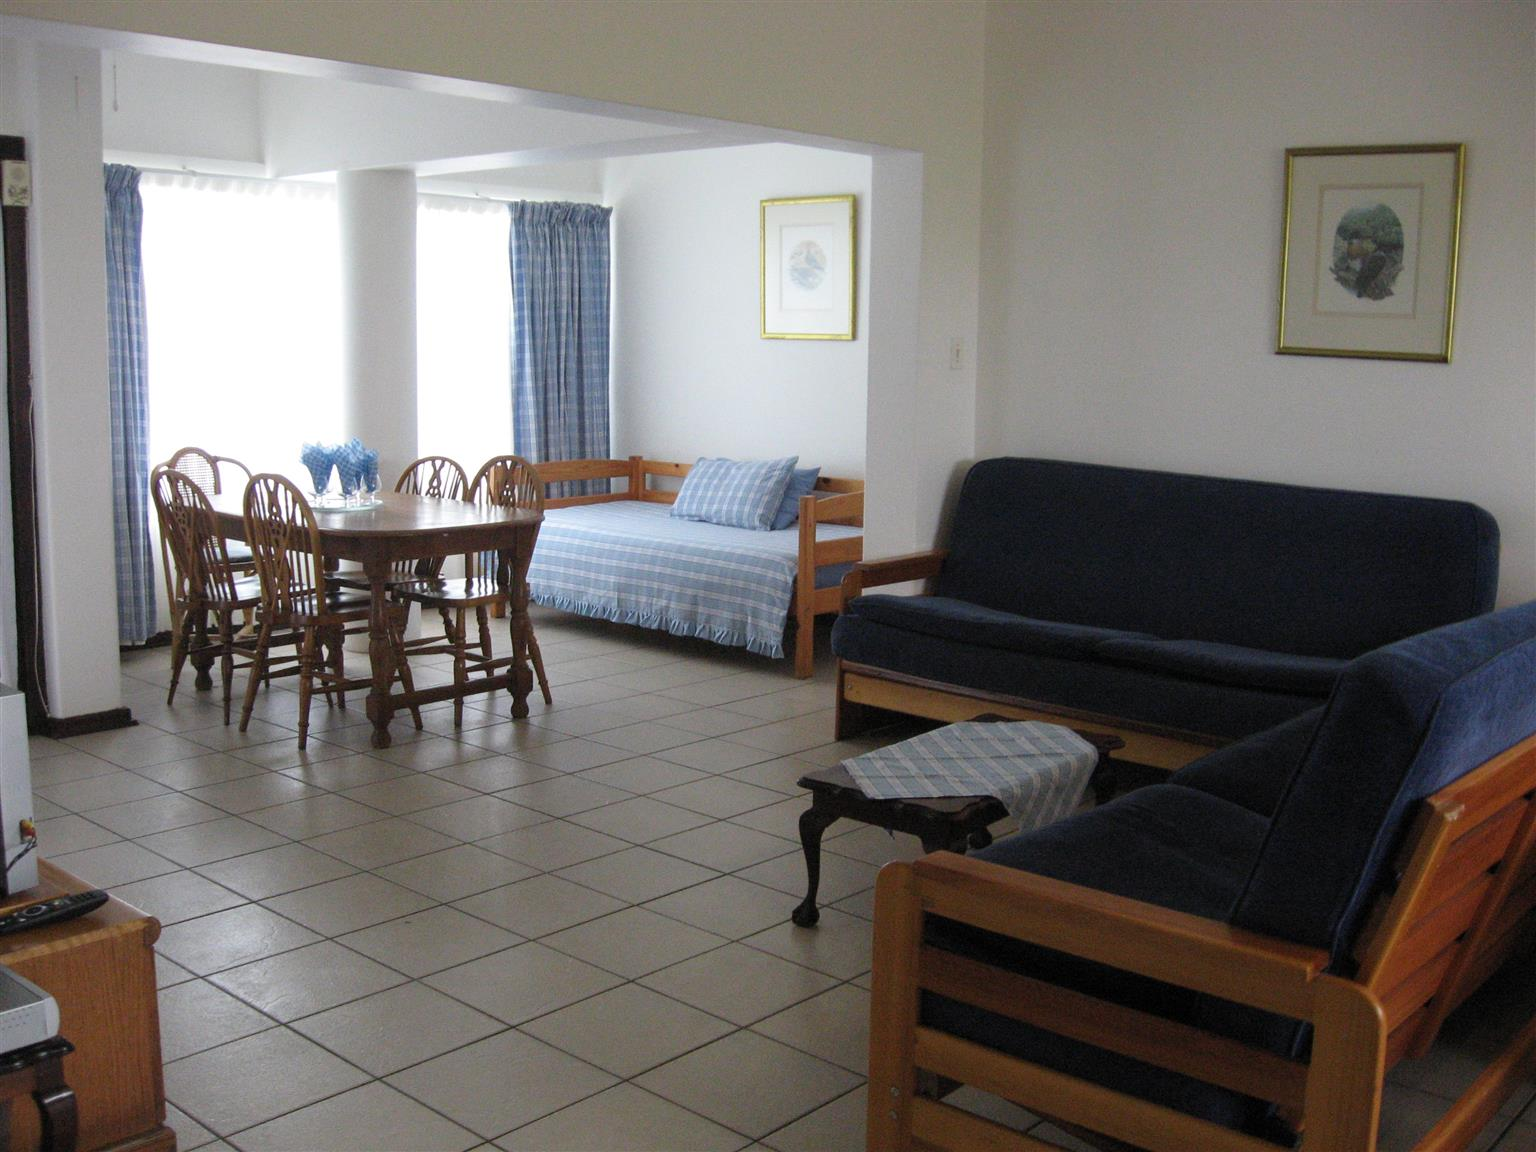 TRIPLE STOREY BLOCK OF FIVE FURNISHED ONE, TWO AND THREE BEDROOM FLATS. GOOD ROI - UVONGO